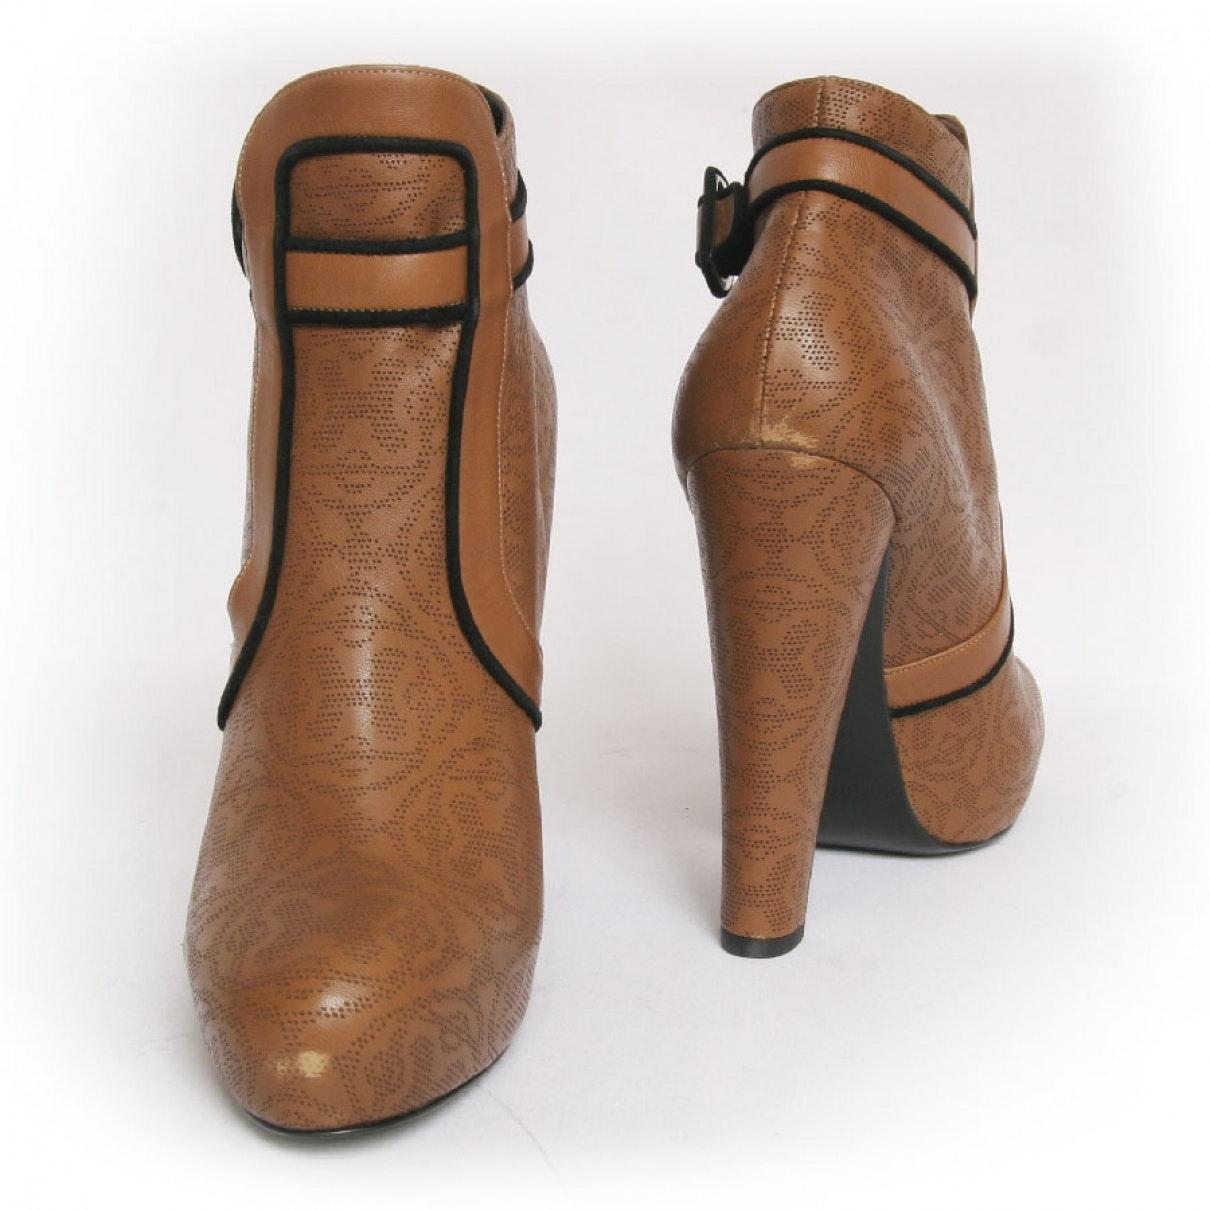 Hermès n Brown Leather Ankle Boots